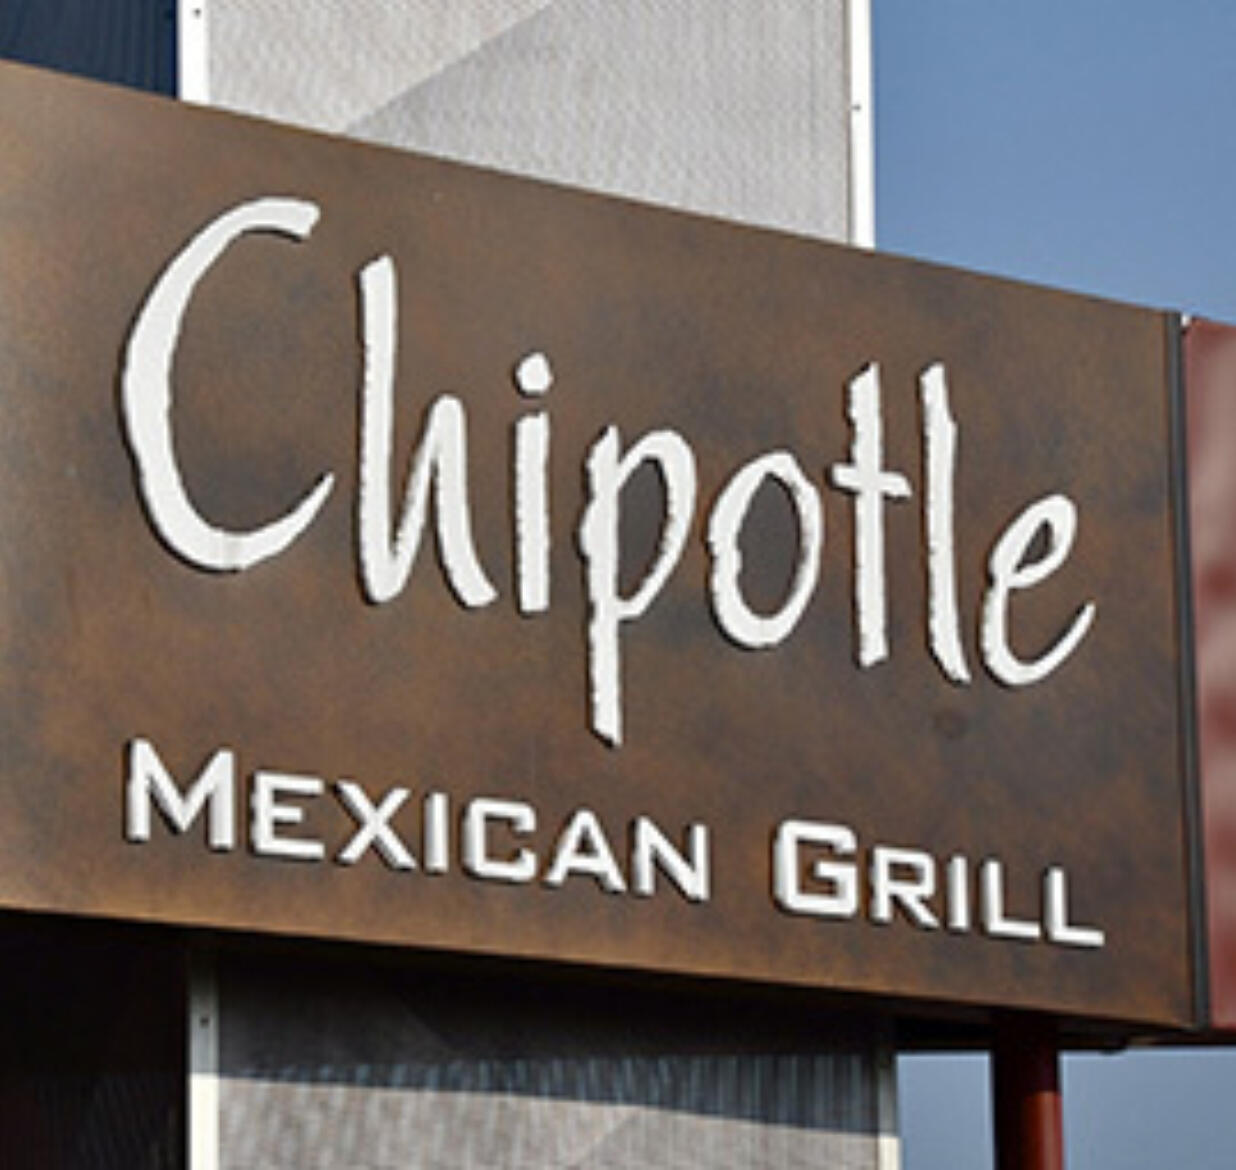 School Food Lessons We Should Learn From Chipotle